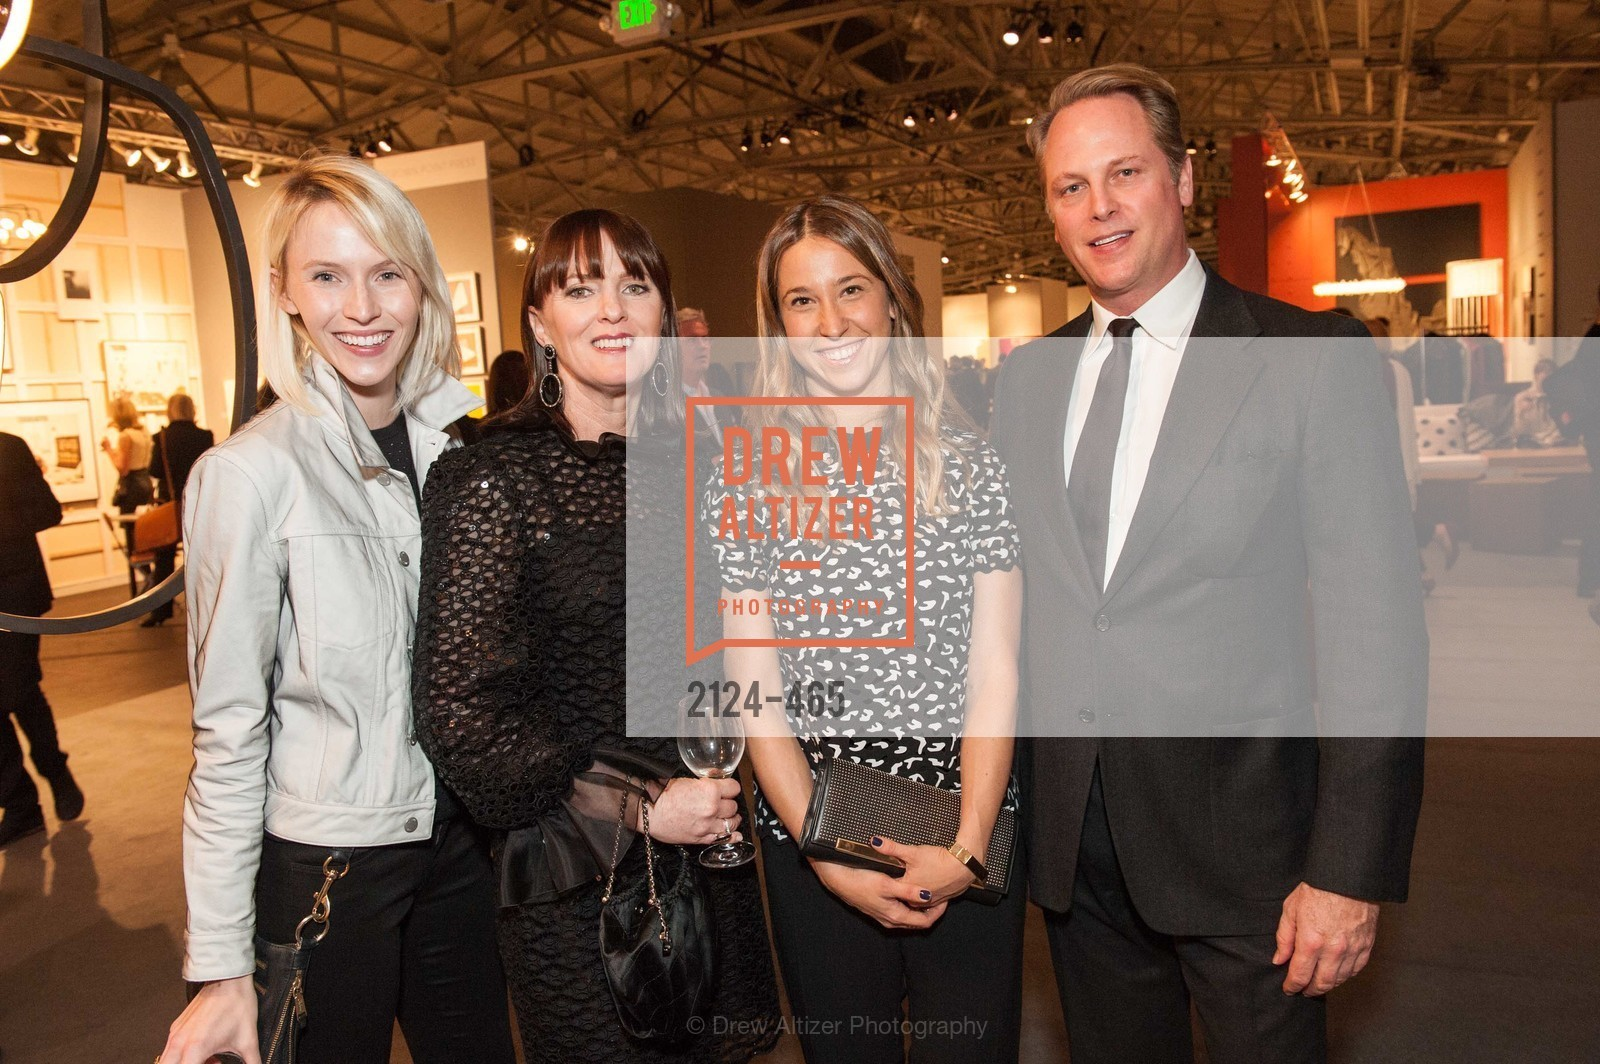 Stephanie Bolger, Allison Speer, Meredith Darrow, Todd Merrill, FOG Design + Art Preview Gala, US. US, January 16th, 2014,Drew Altizer, Drew Altizer Photography, full-service event agency, private events, San Francisco photographer, photographer California